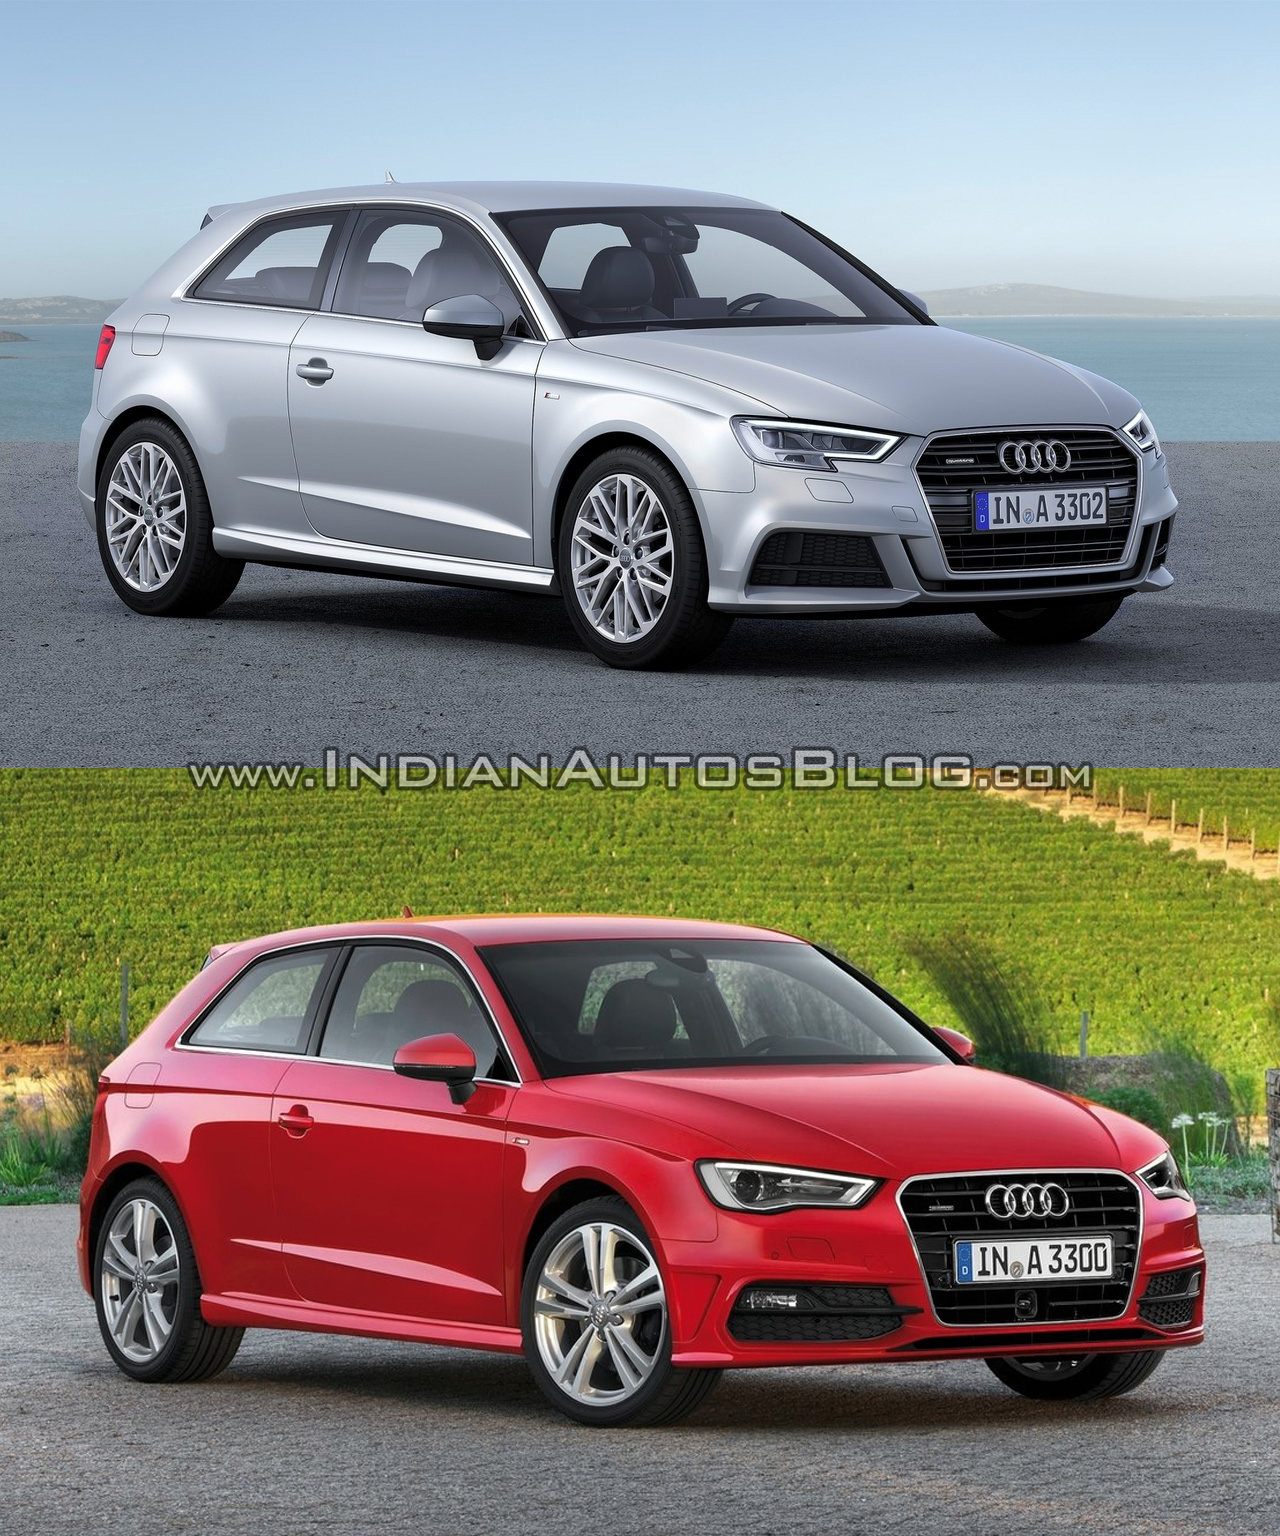 2016 audi a3 hatchback facelift old vs new. Black Bedroom Furniture Sets. Home Design Ideas